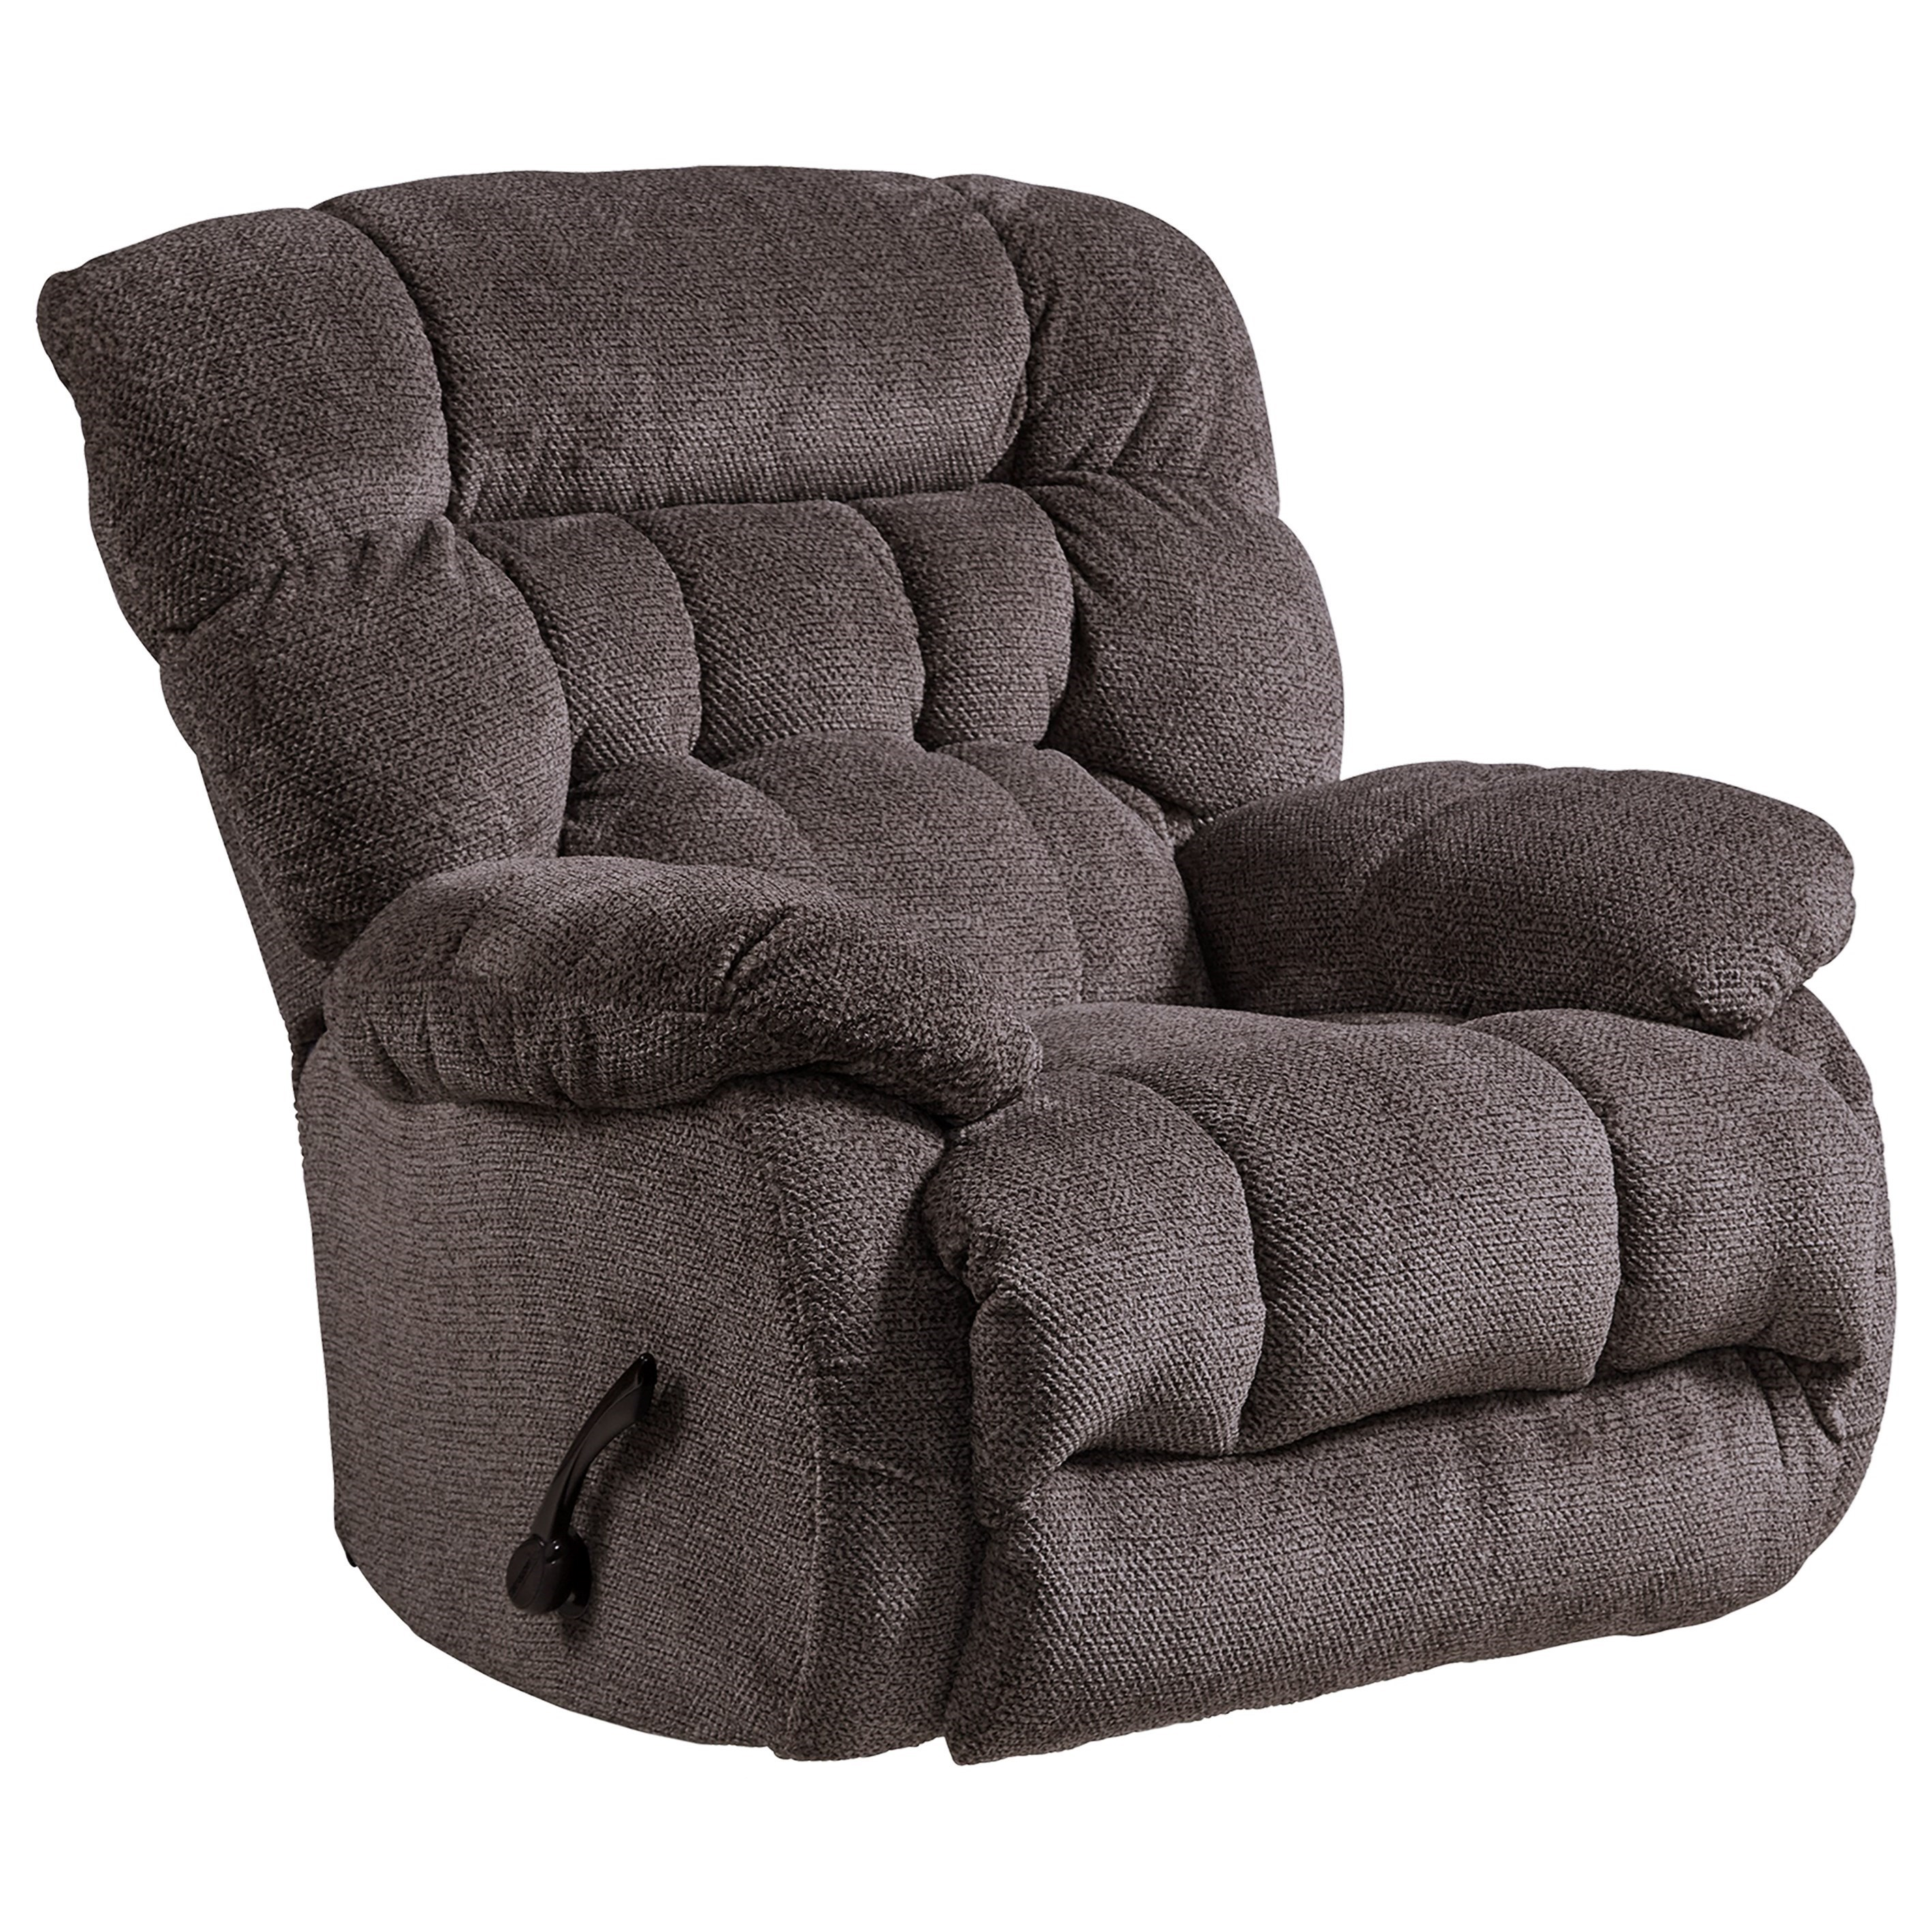 Daly Swivel Glider Recliner by Catnapper at Northeast Factory Direct